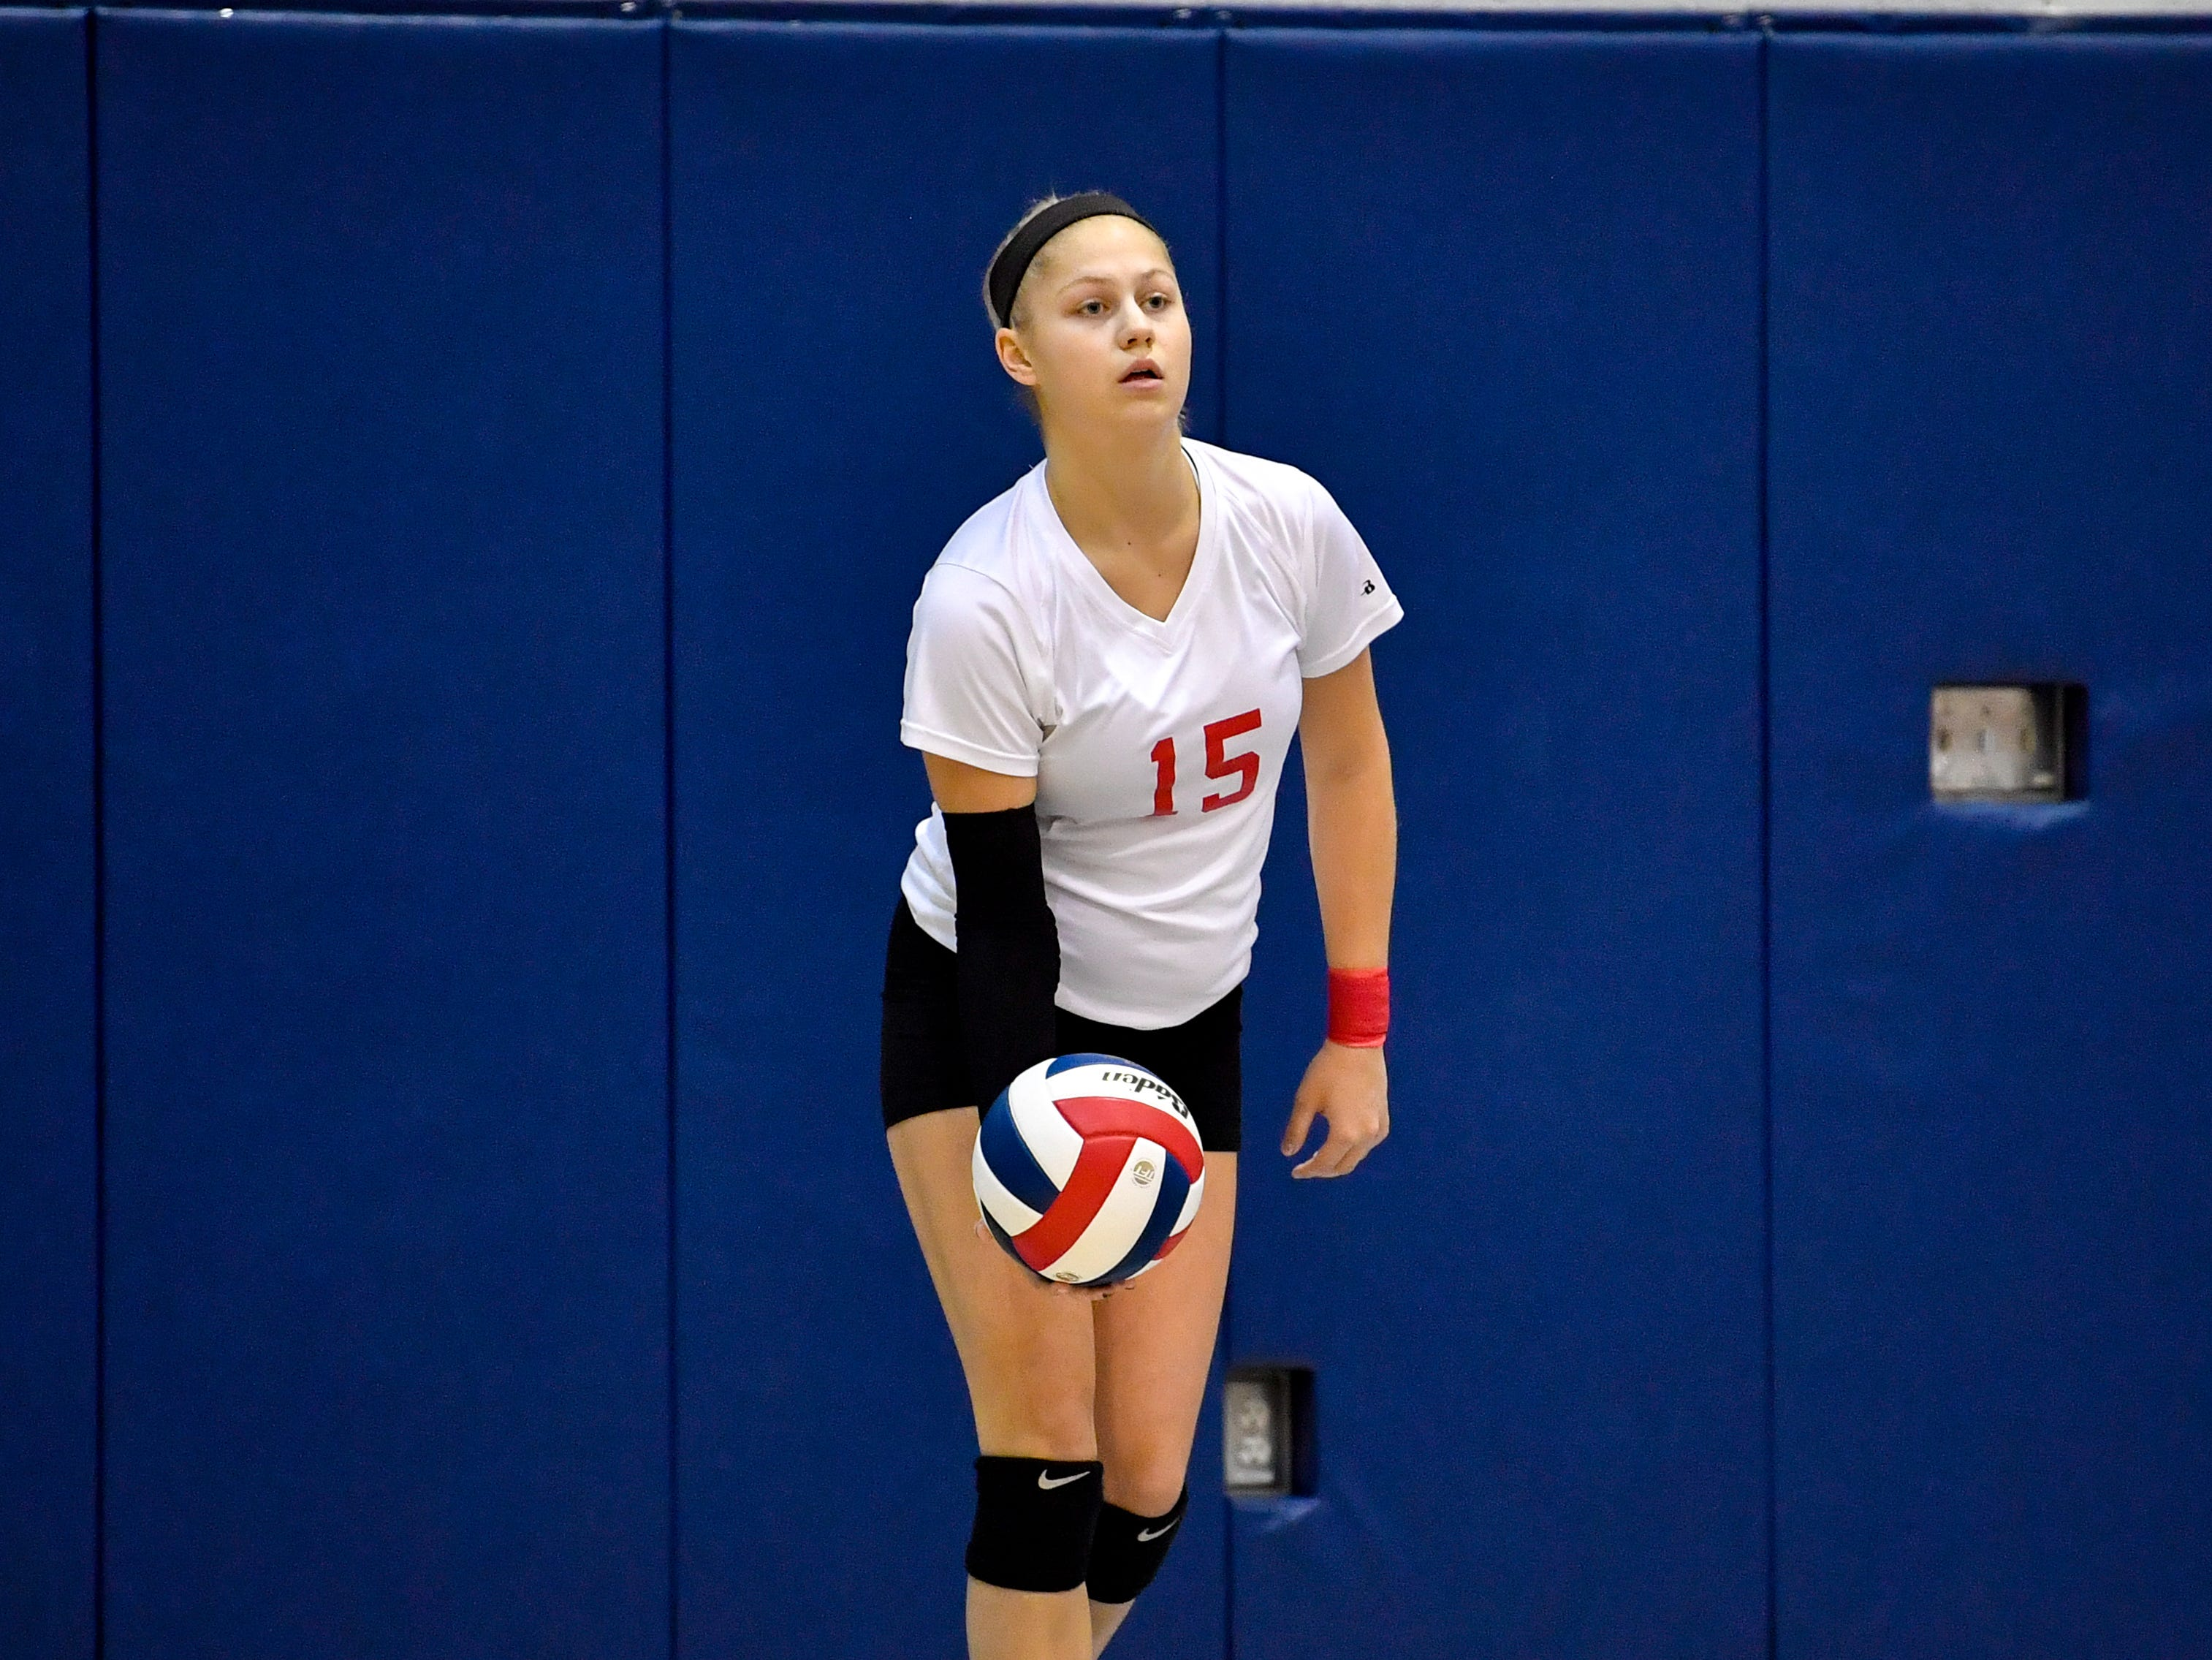 Abby Diehl (15) of Dover gets ready to serve during the YAIAA league volleyball tournament semifinals between West York and Dover, Tuesday, October 23, 2018. The Bulldogs defeated the Eagles 3-1.